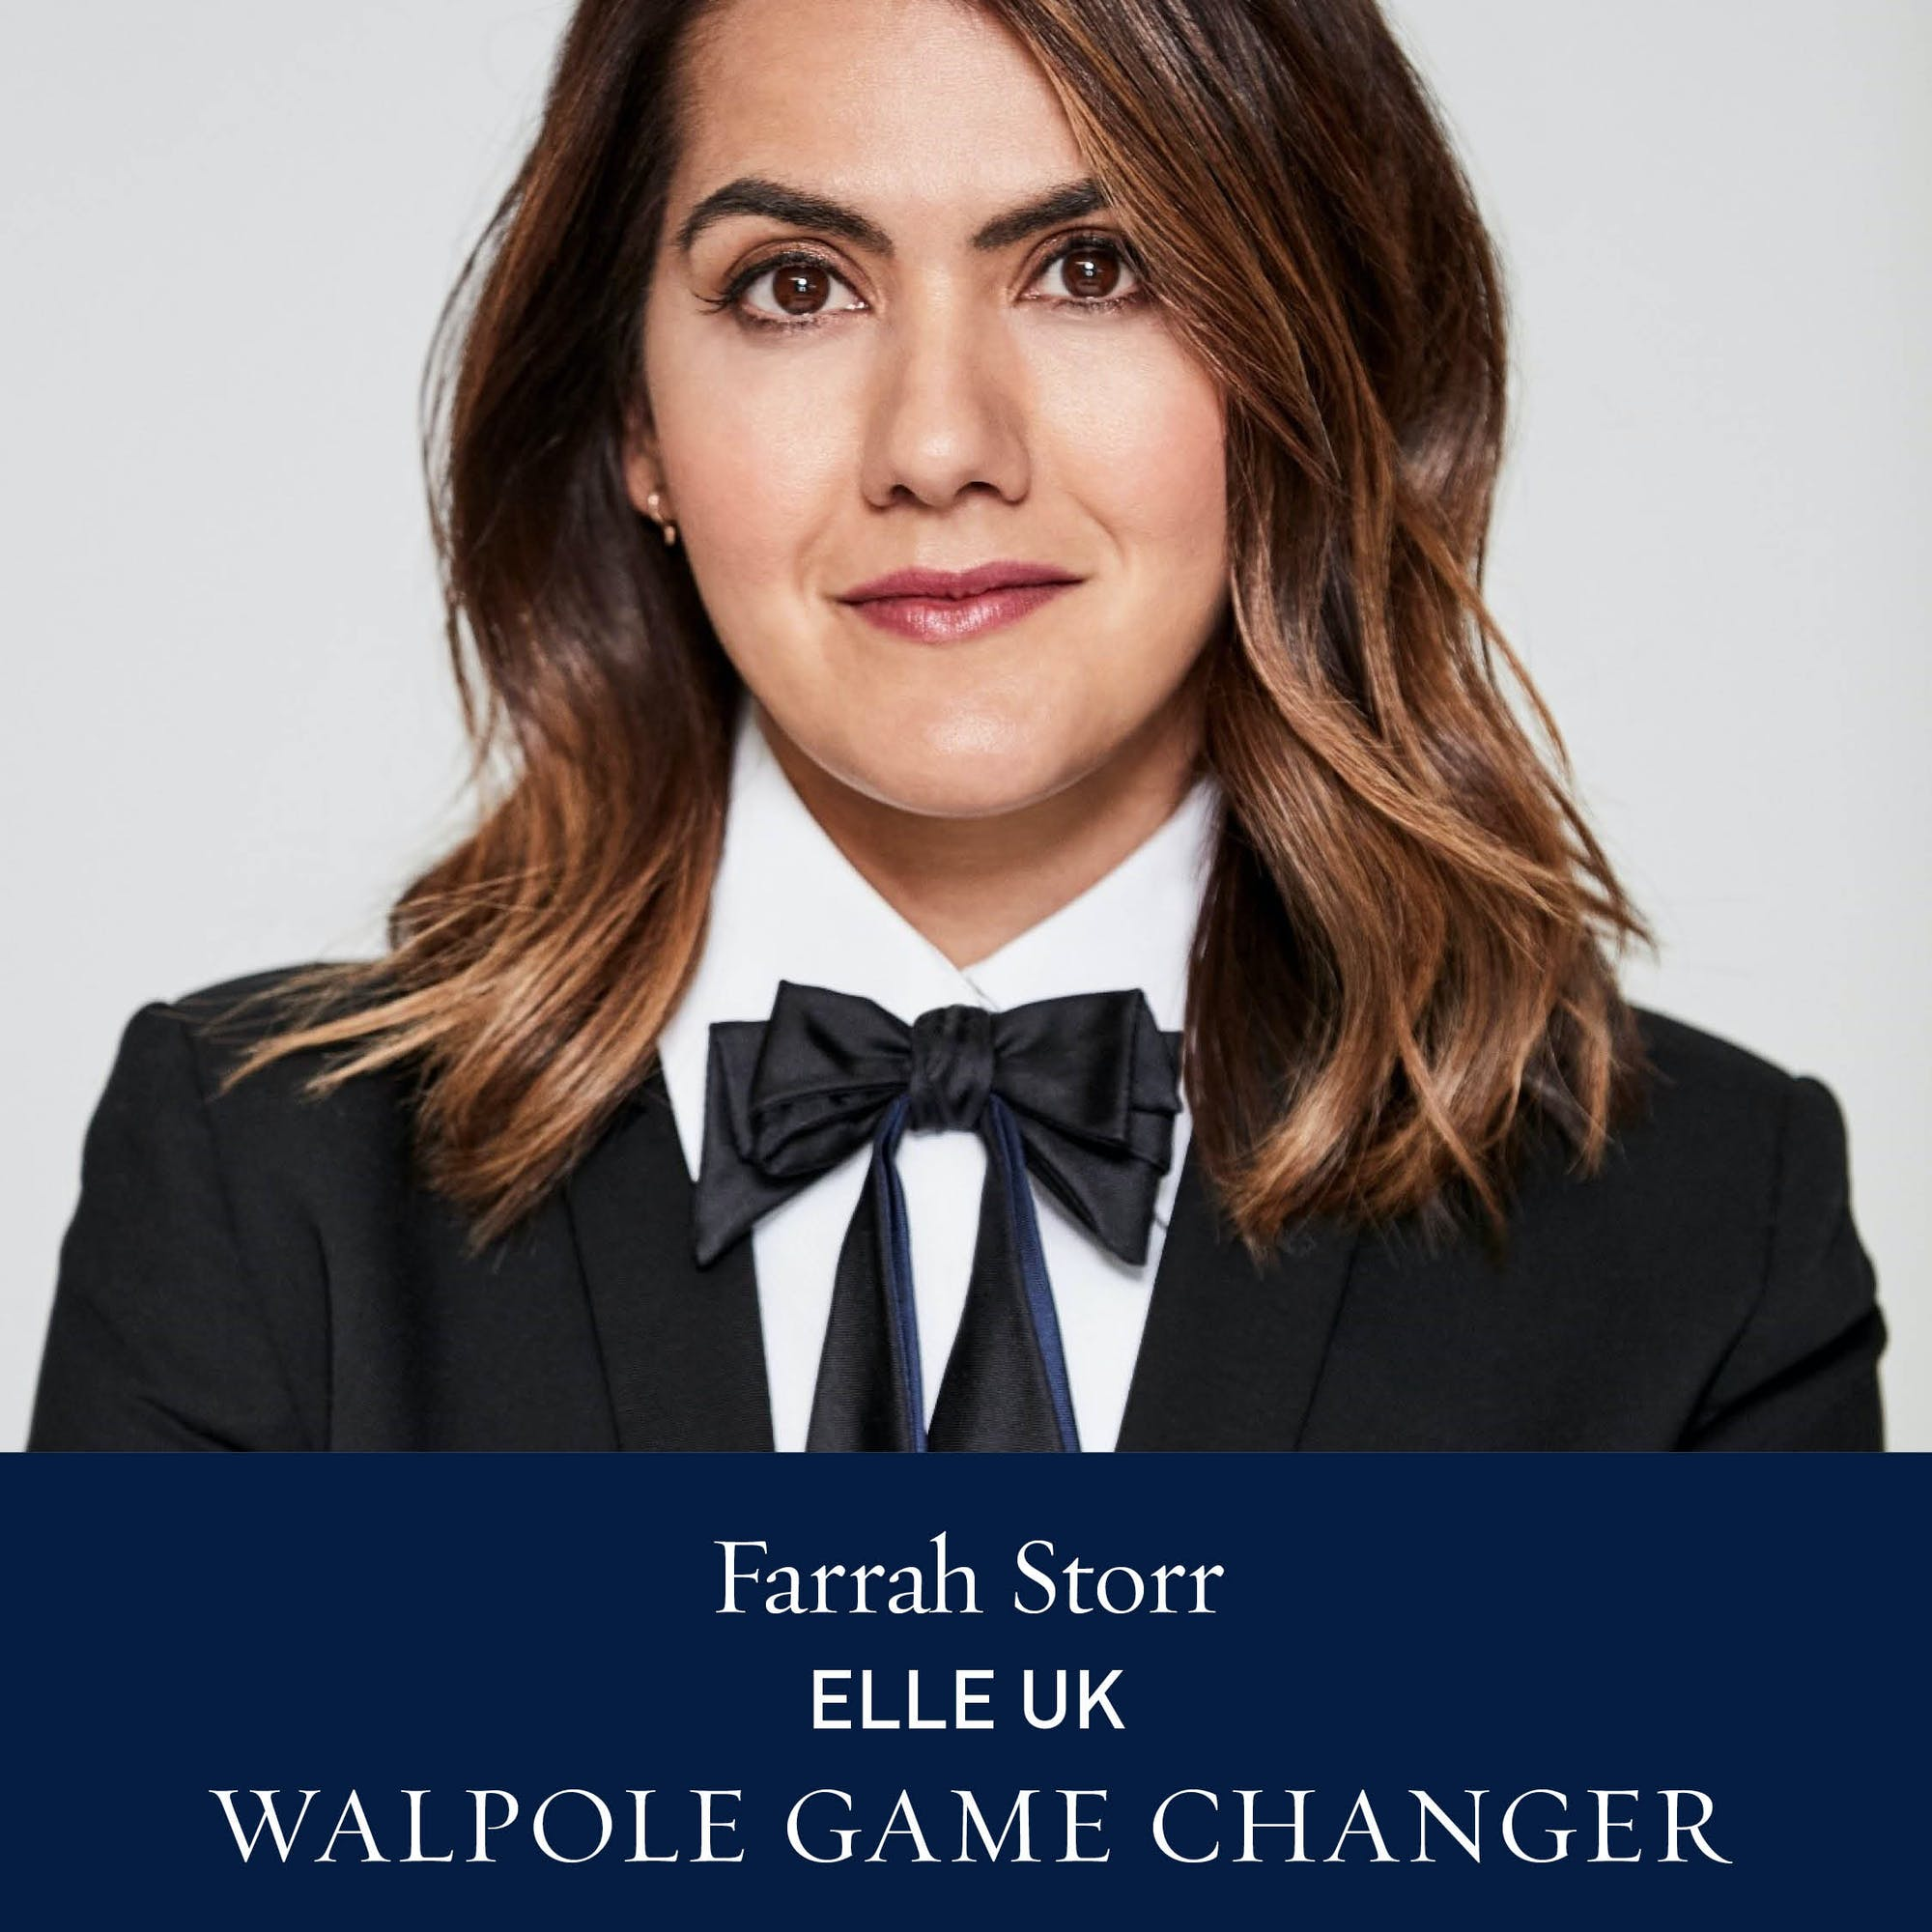 The Walpole Power List  The Game Changers: Farrah Storr, Editor in Chief of ELLE UK